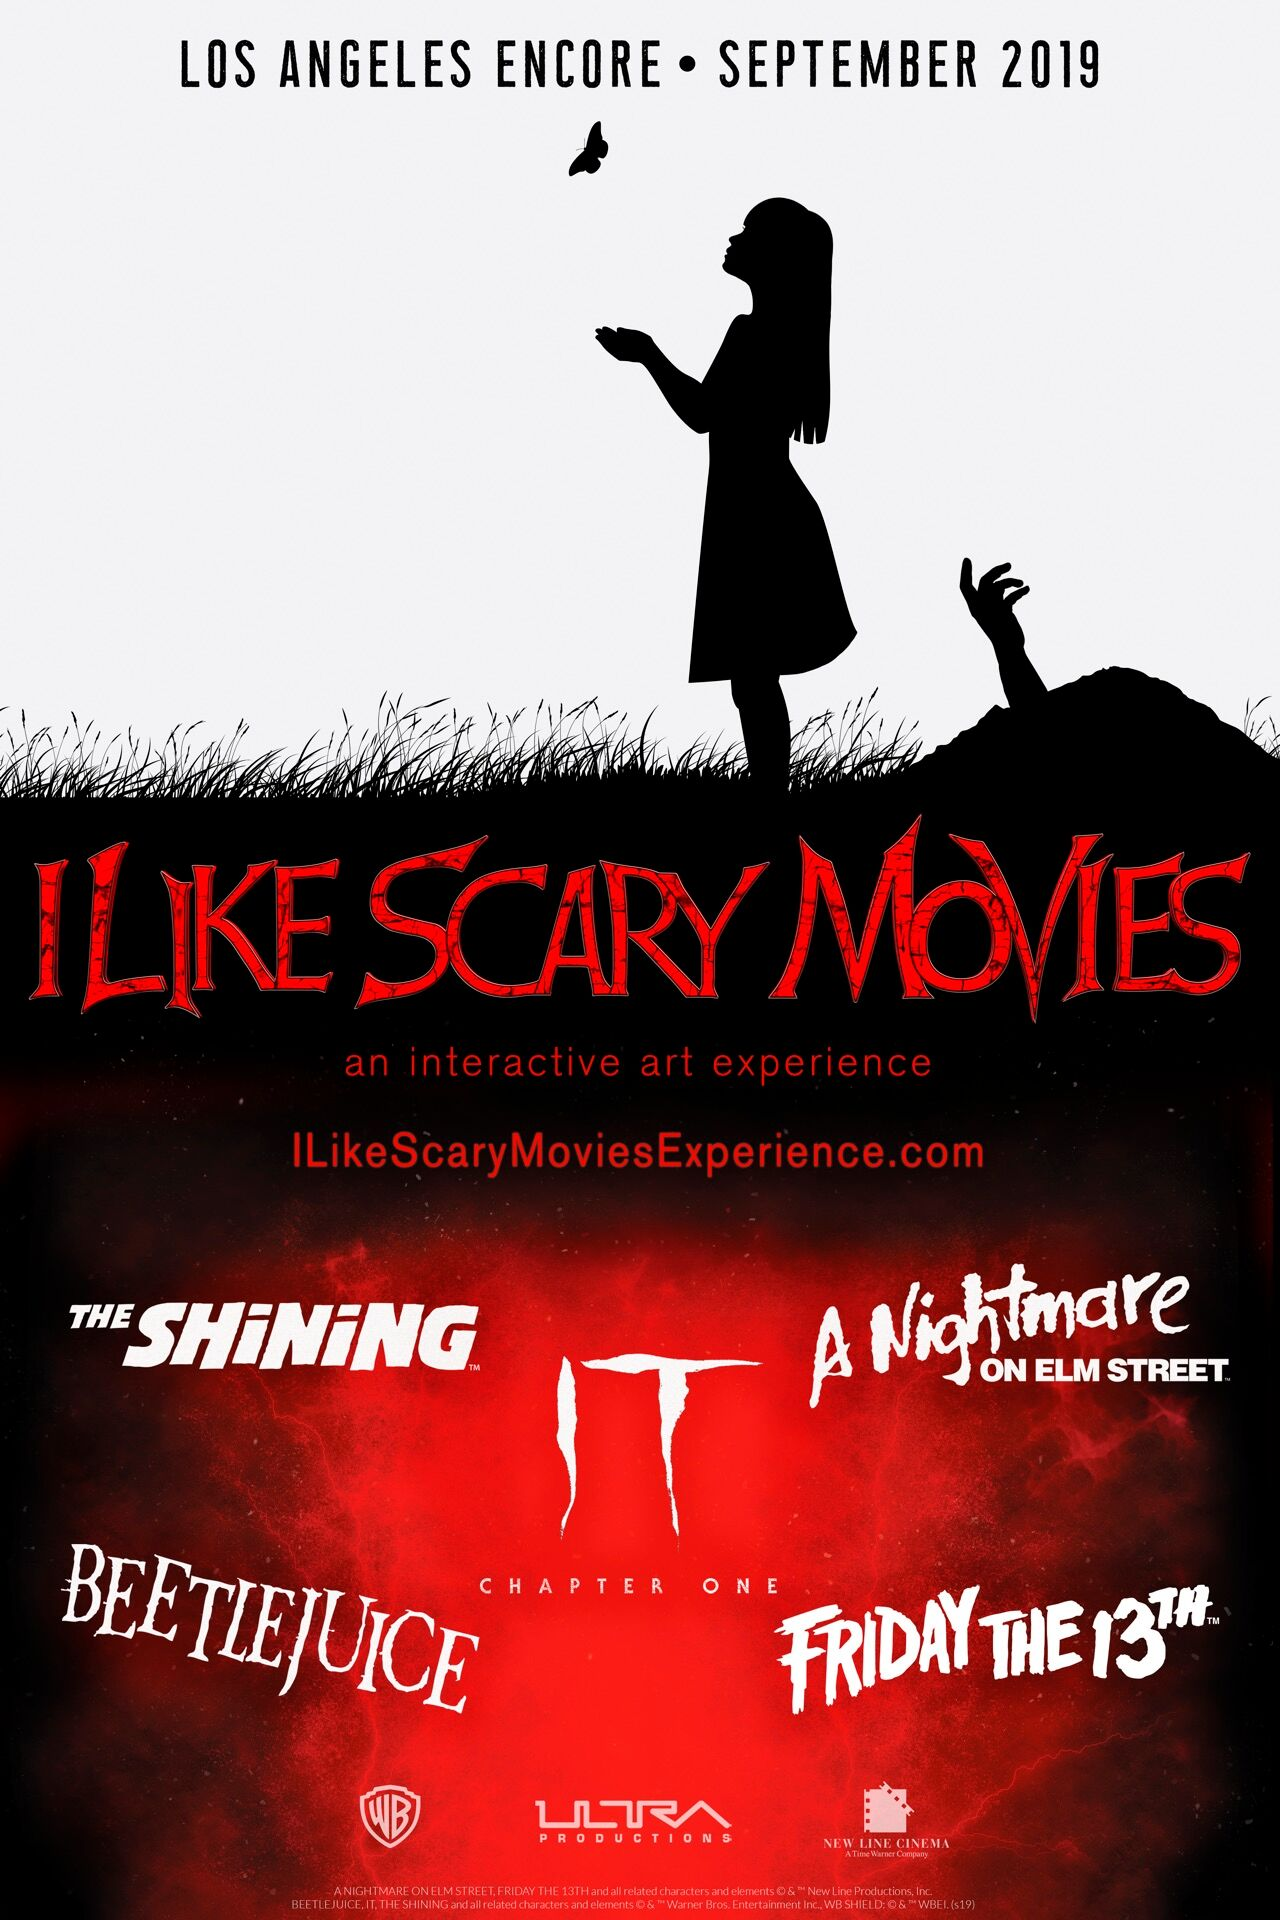 [News] Win A Pair of Tickets to I LIKE SCARY MOVIES